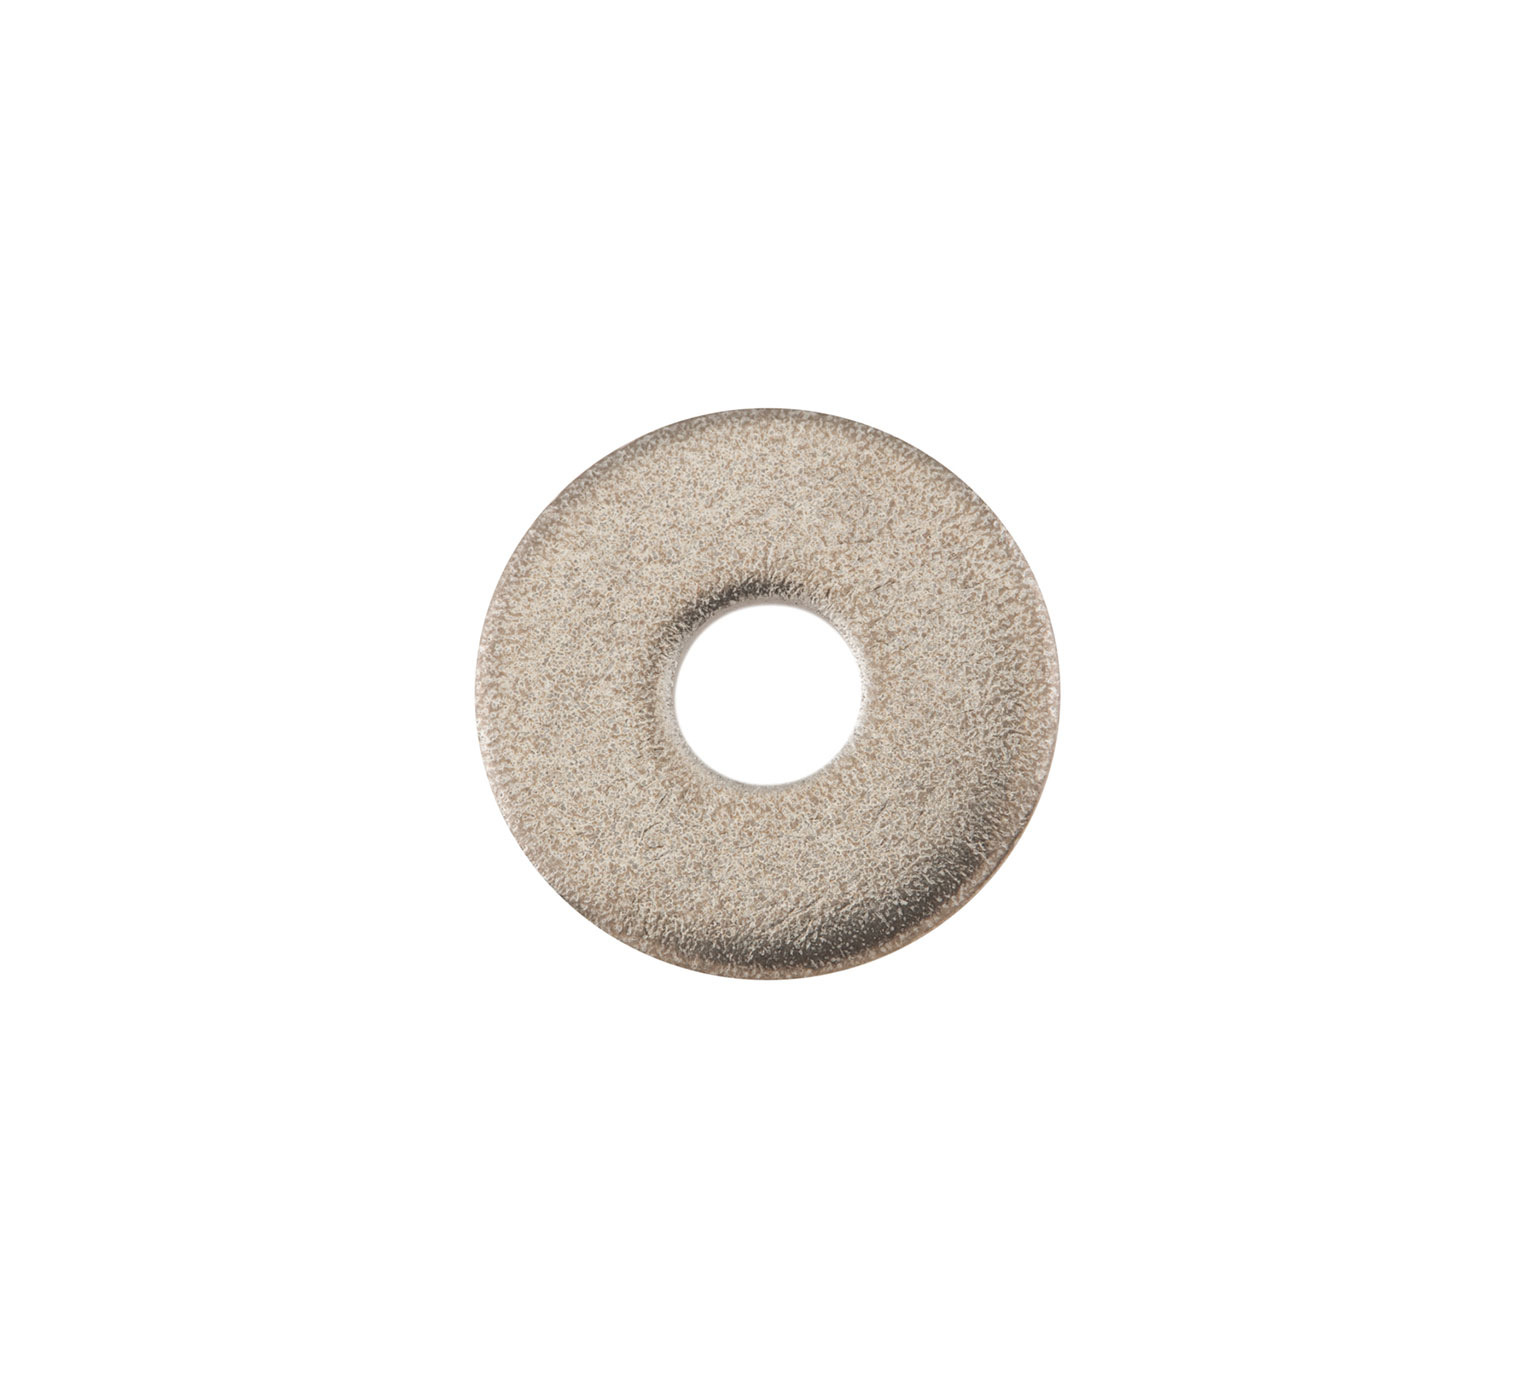 1017218 Stainless Steel Flat Washer - 1 OD x 0.325 ID x 0.12 in alt 1